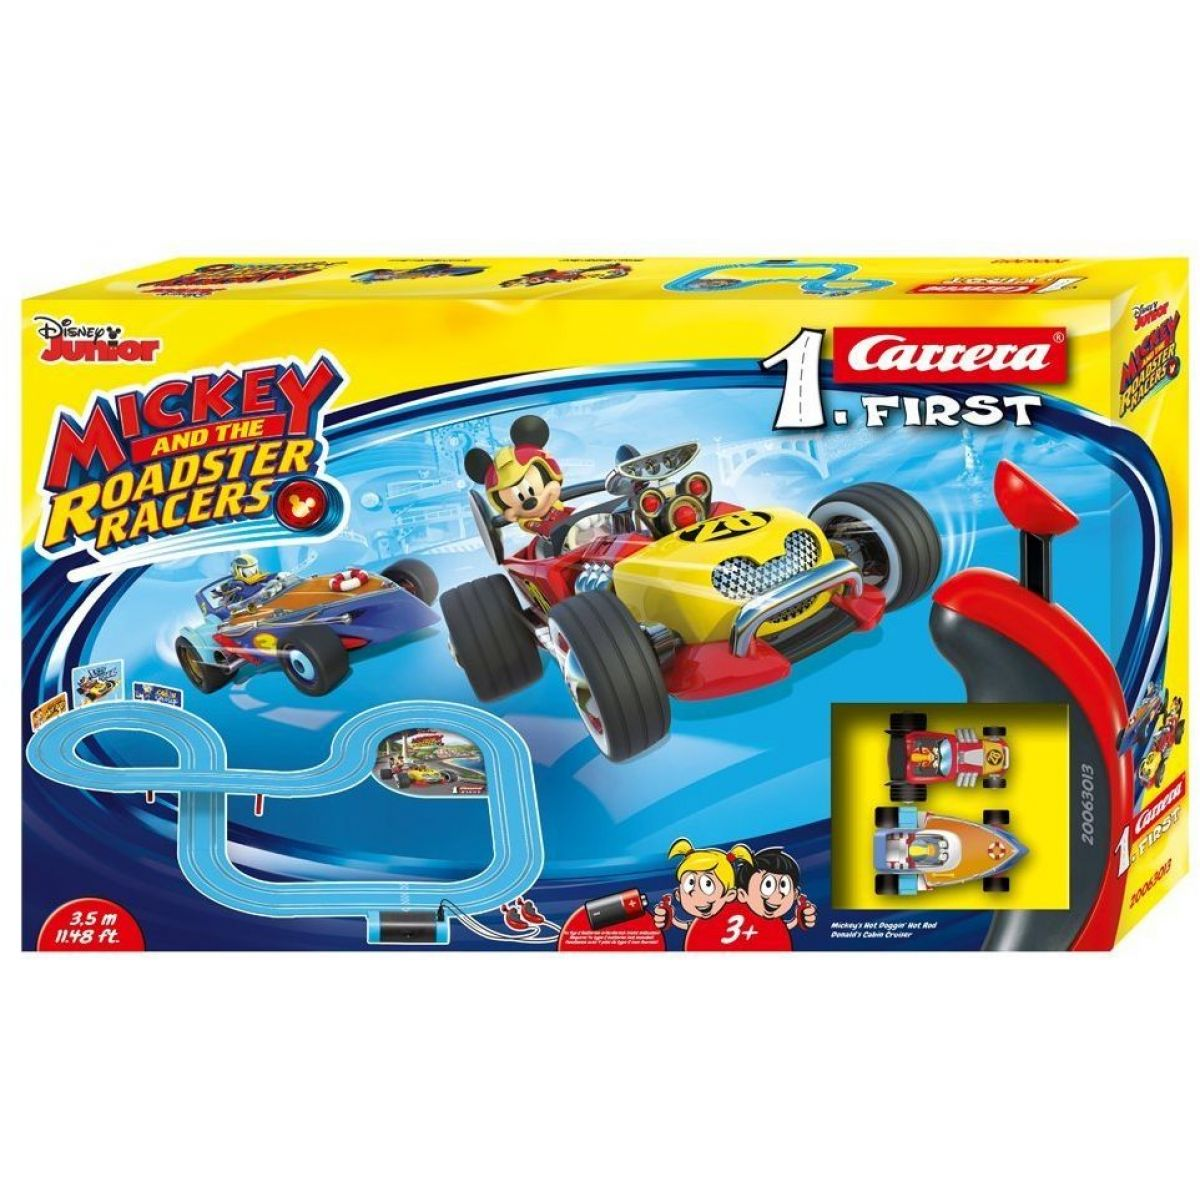 Carrera First Disney autodráha 63013 Mickey Racers